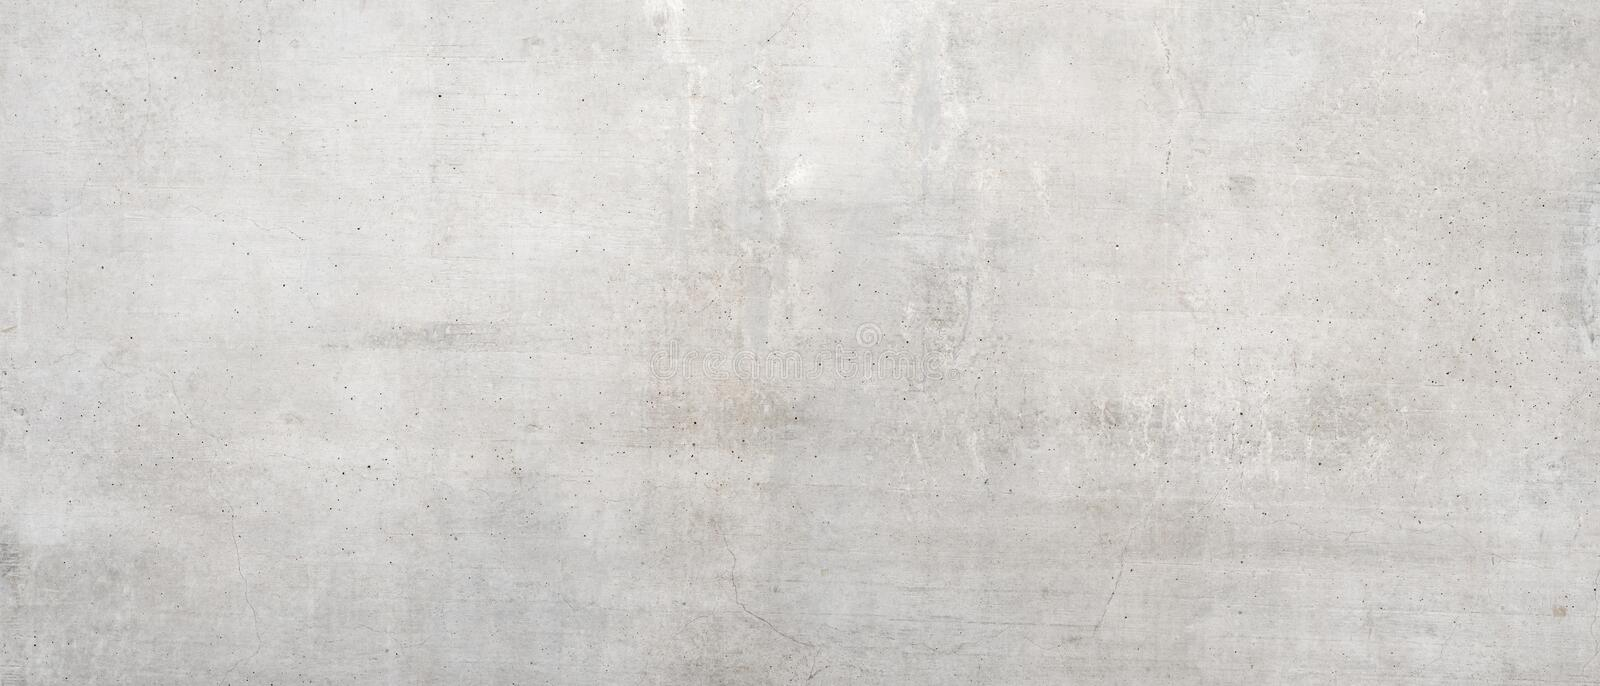 Texture of old concrete wall. Texture of old gray concrete wall for background